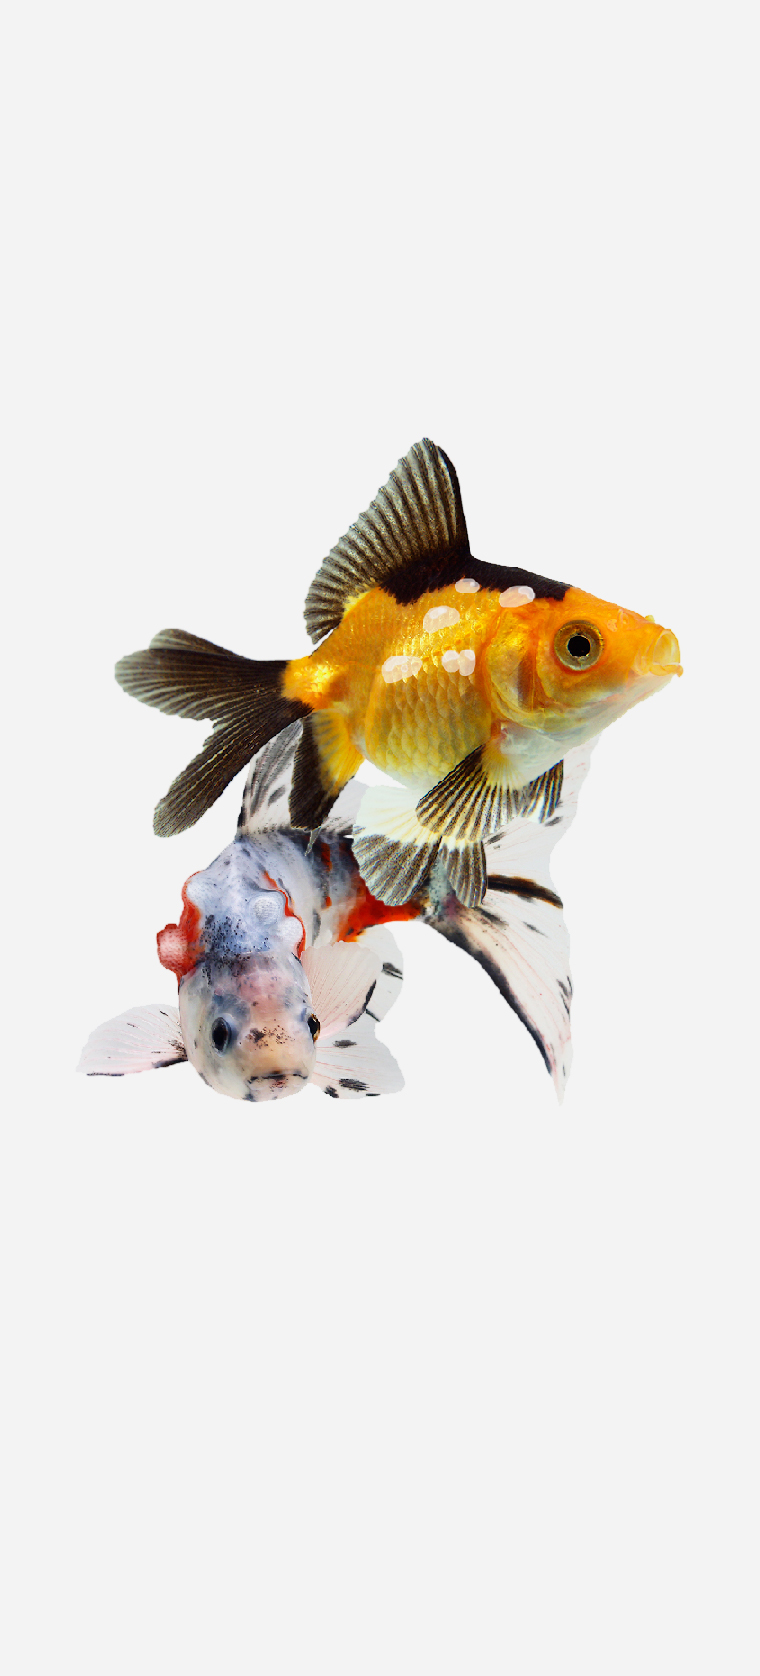 Two species of Goldfish, one with opaque waxy lumps over it